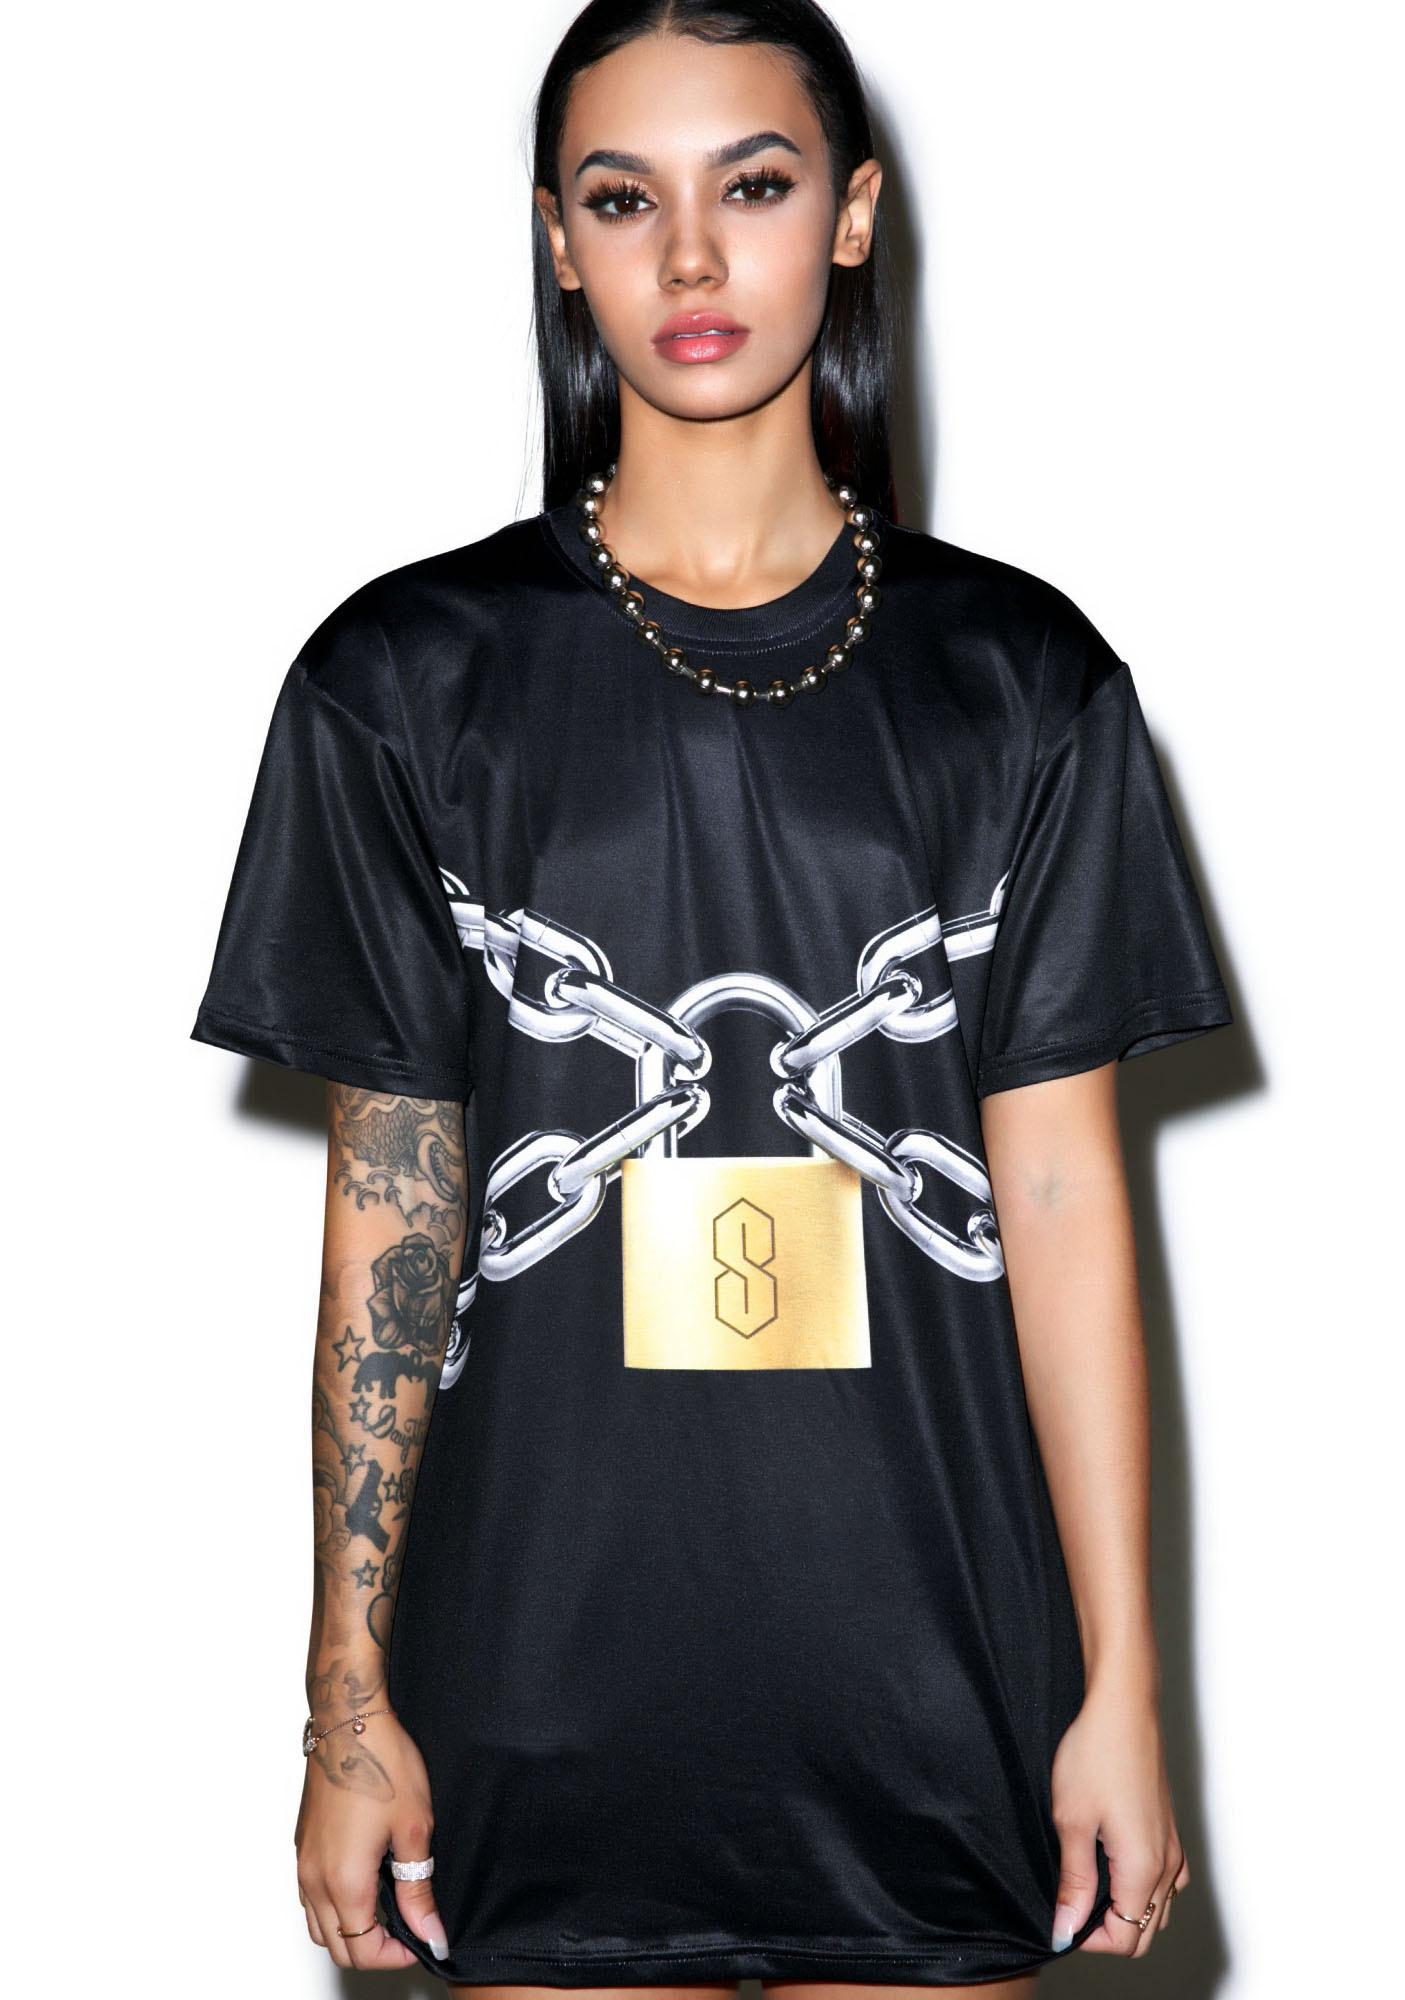 SOWET Locked Up T-Shirt